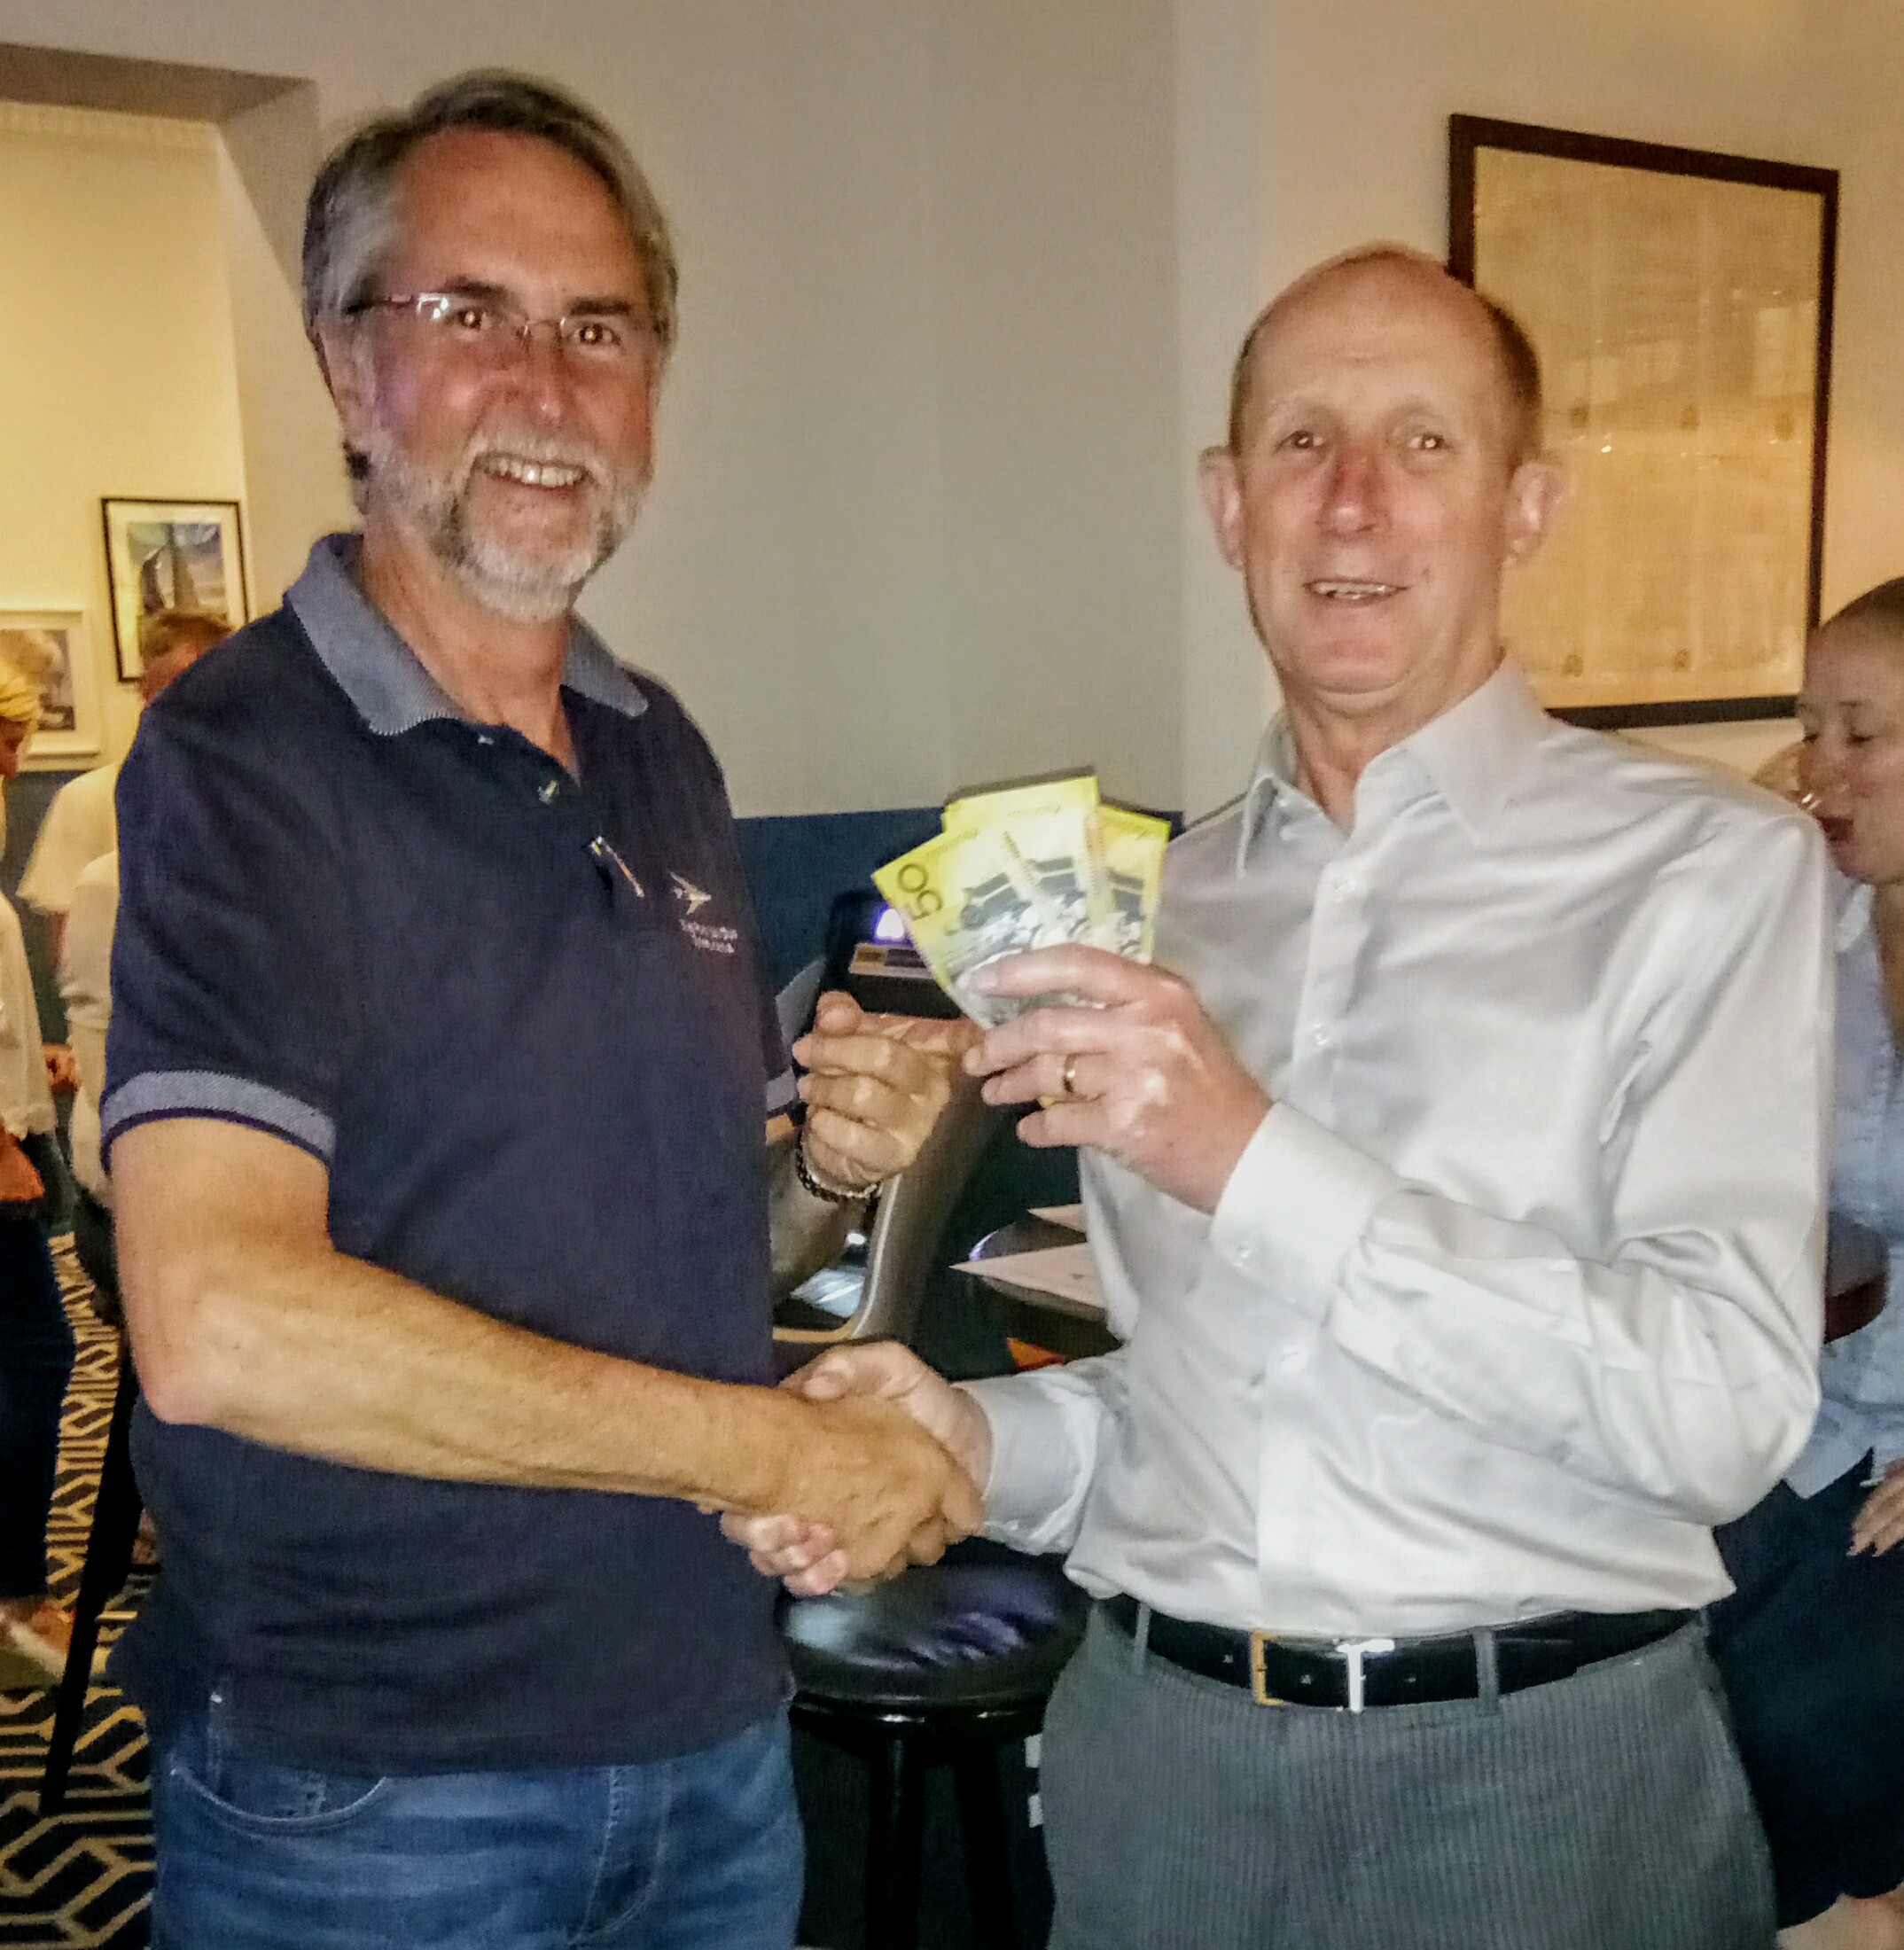 Vice Commodore, Chris, handing over the dosh to a very happy Doug.